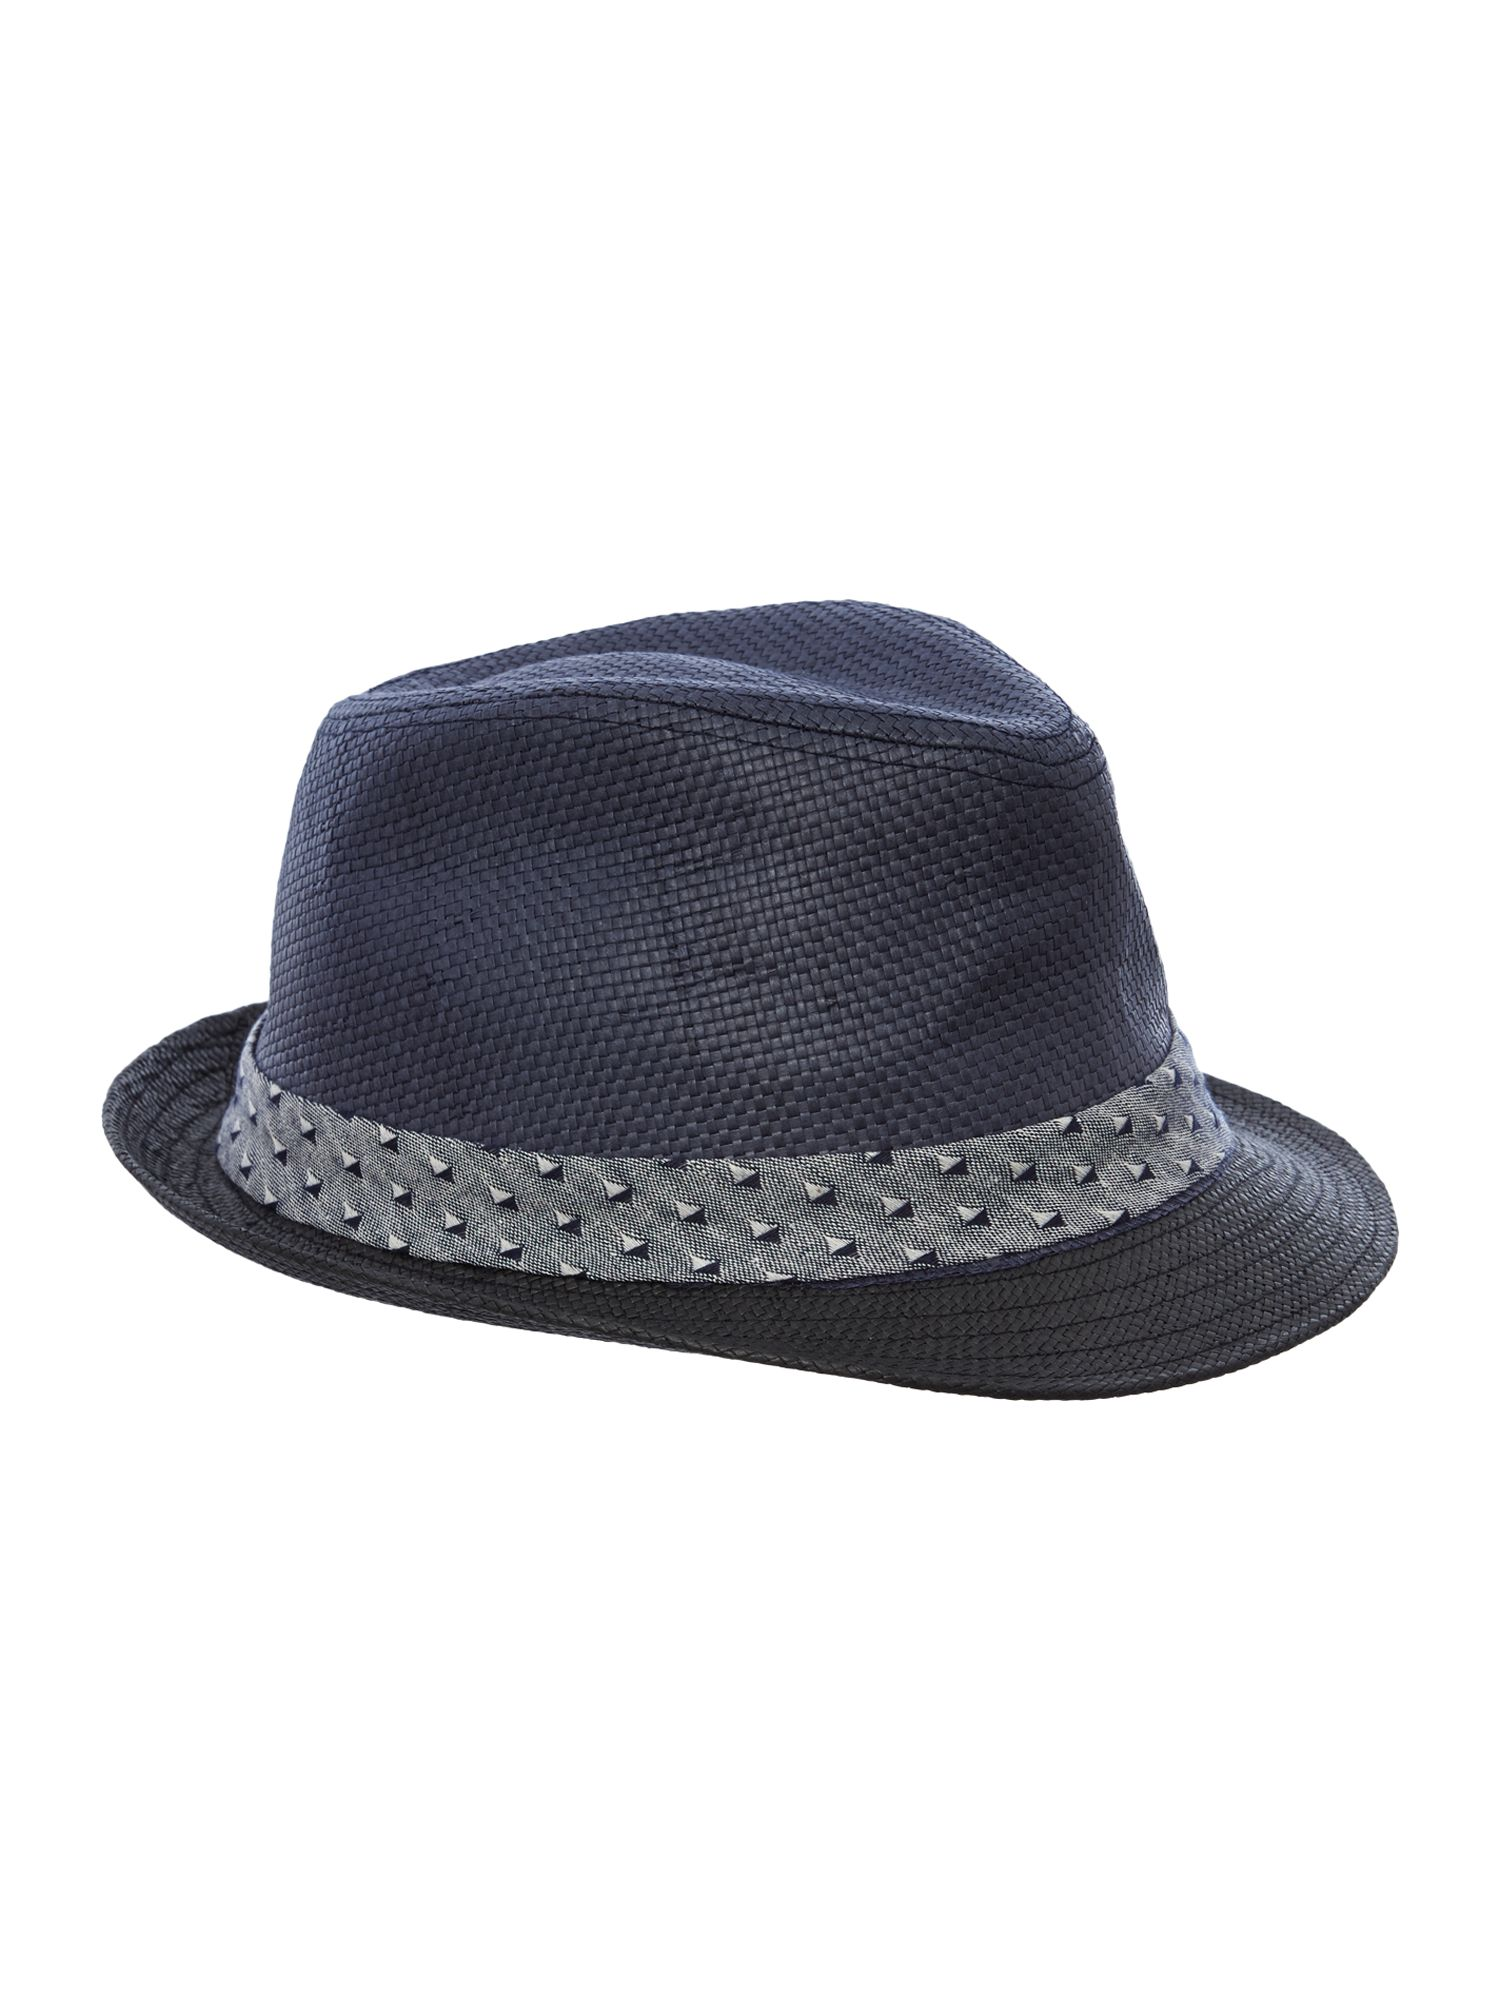 Straw band trilby hat